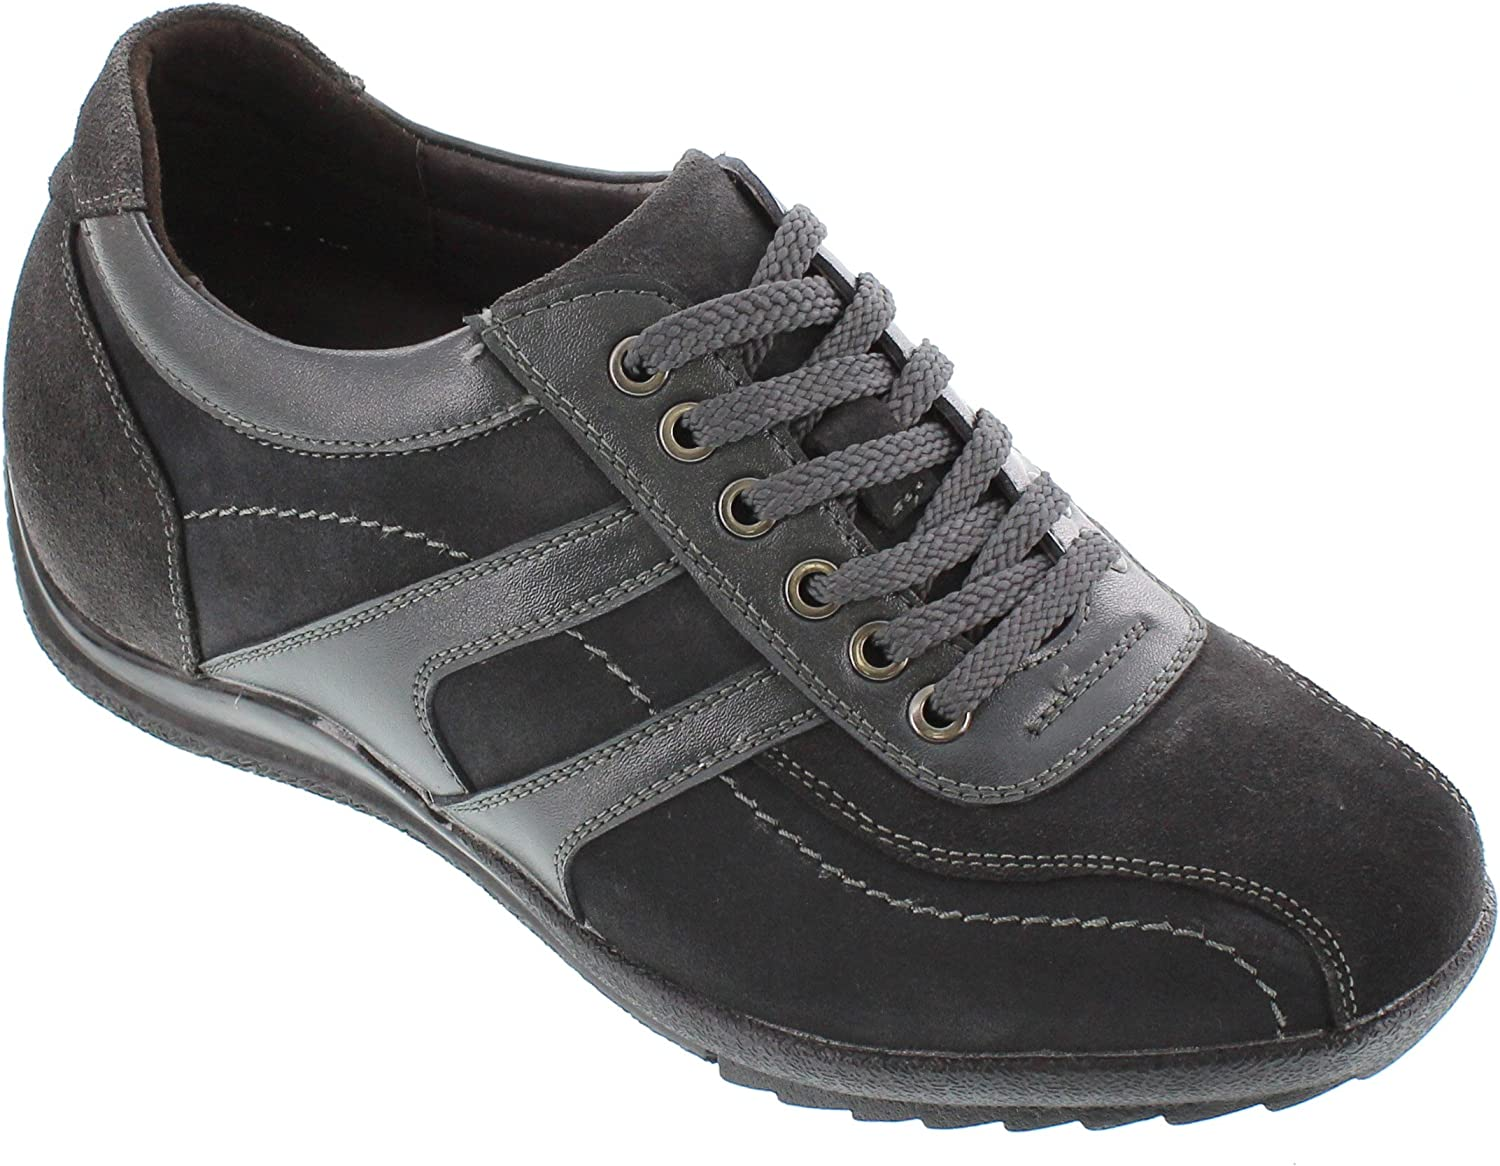 CALTO Men's Invisible Height Increasing Elevator shoes - Nubuck Charcoal Grey Leather Lace-up Lightweight Casual Fashion Sneakers - 2.8 Inches Taller - G60972